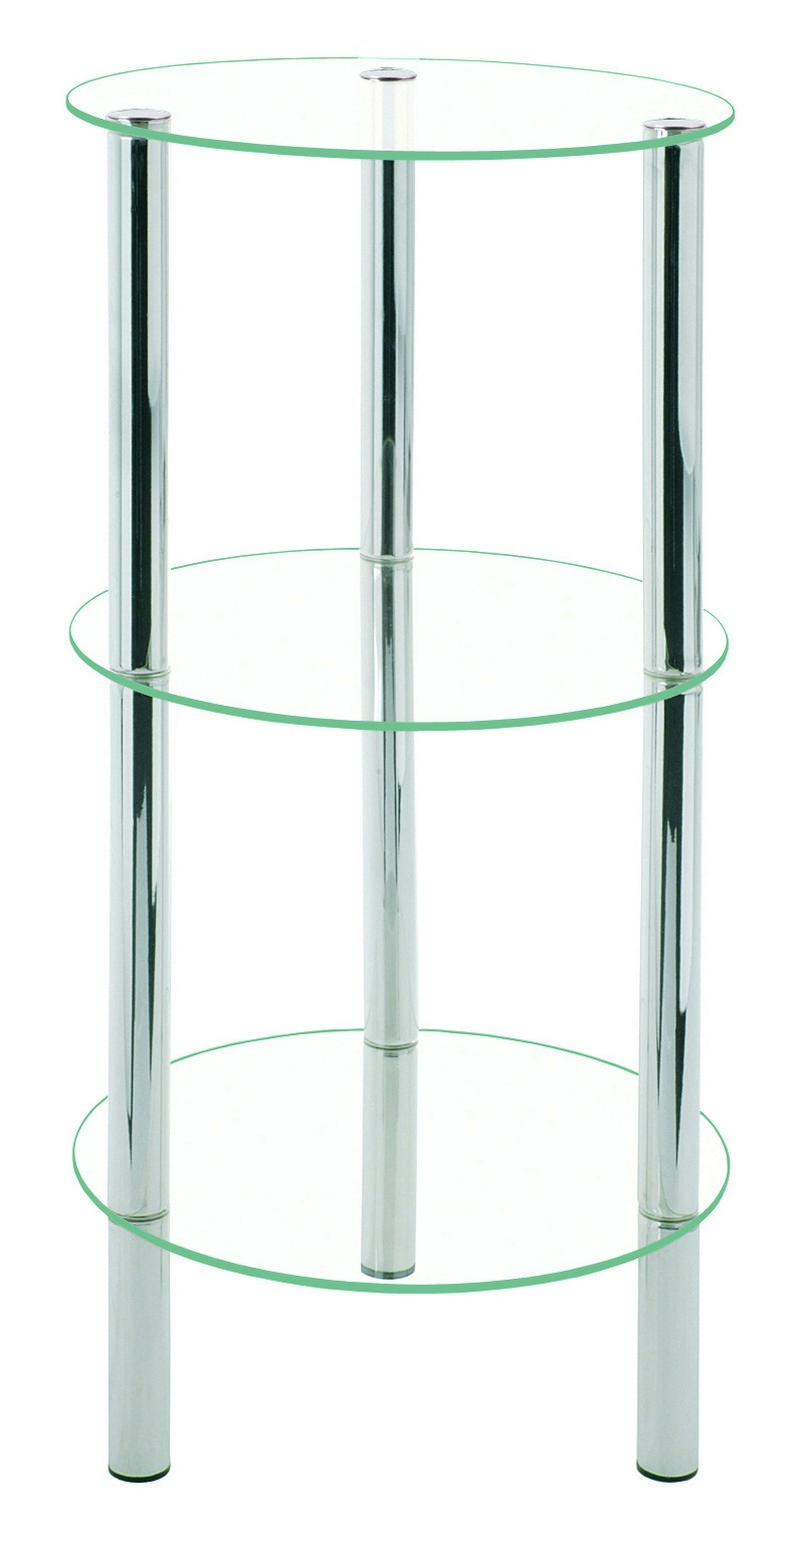 Emden Clear Glass Amp Chrome Tall Display Stand 90240